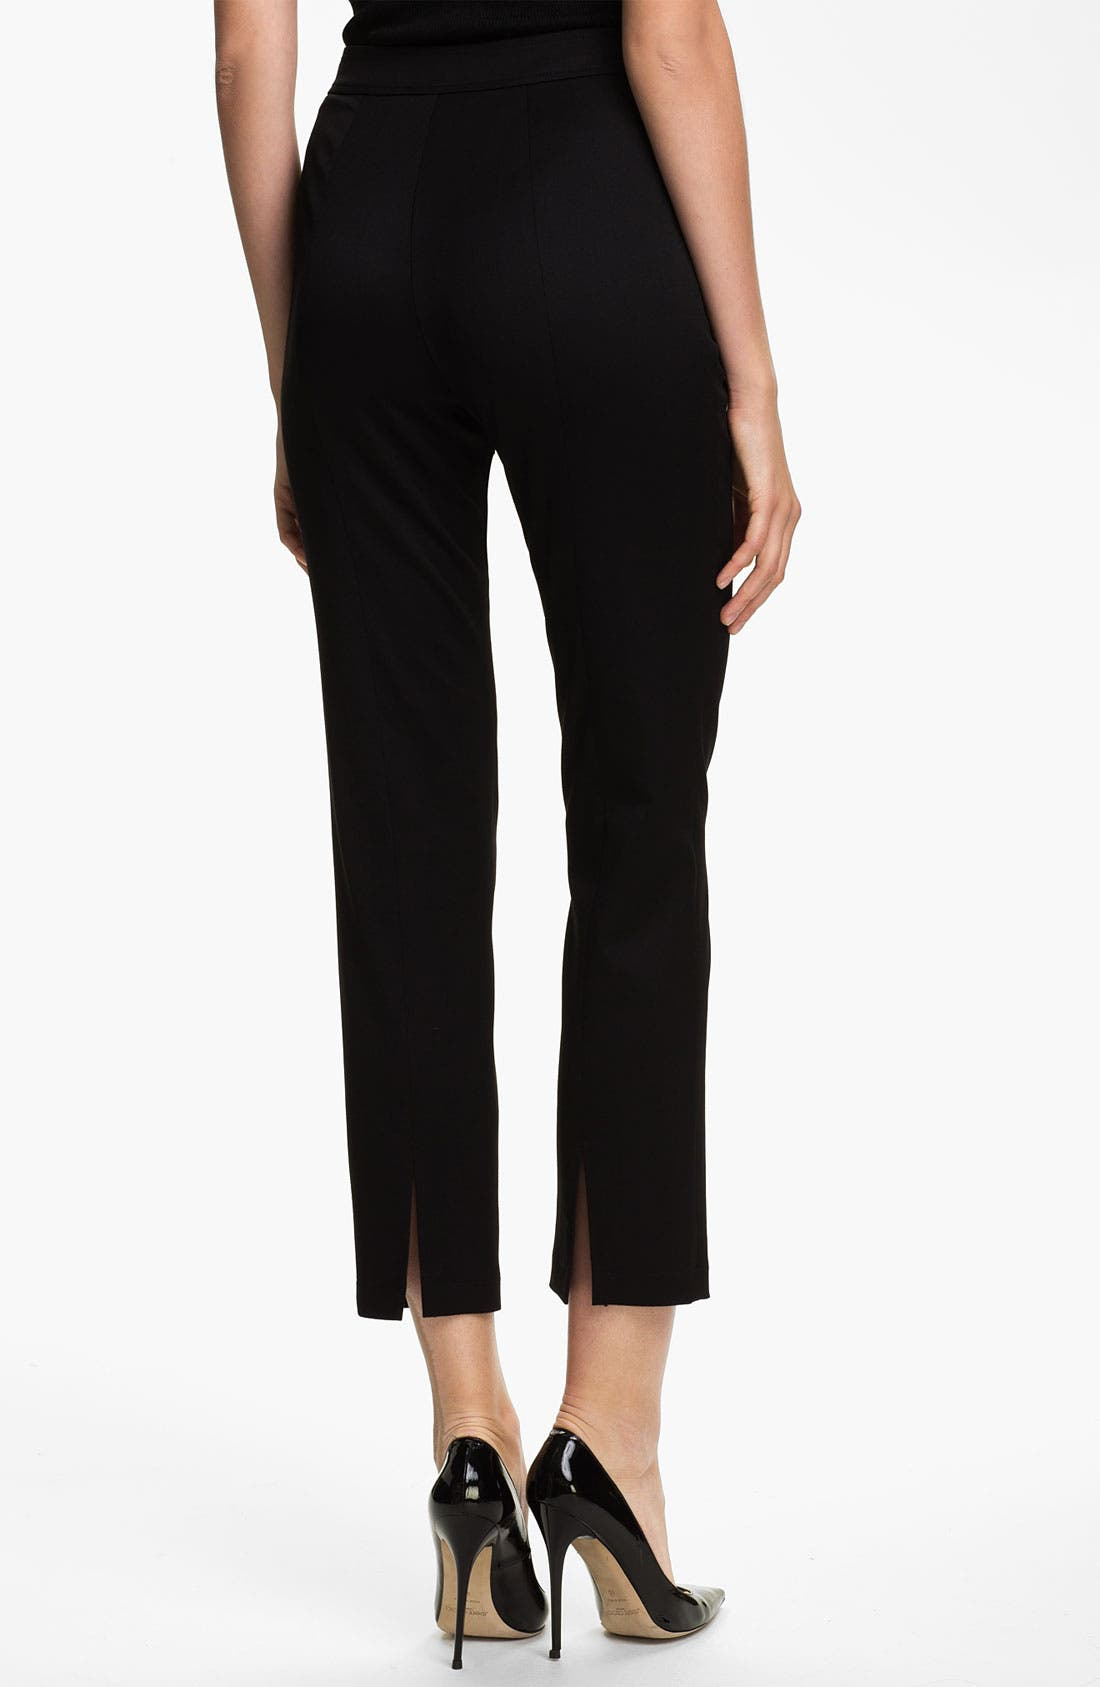 Alternate Image 3  - St. John Collection 'Alexa' Stretch Venetian Wool Ankle Pants